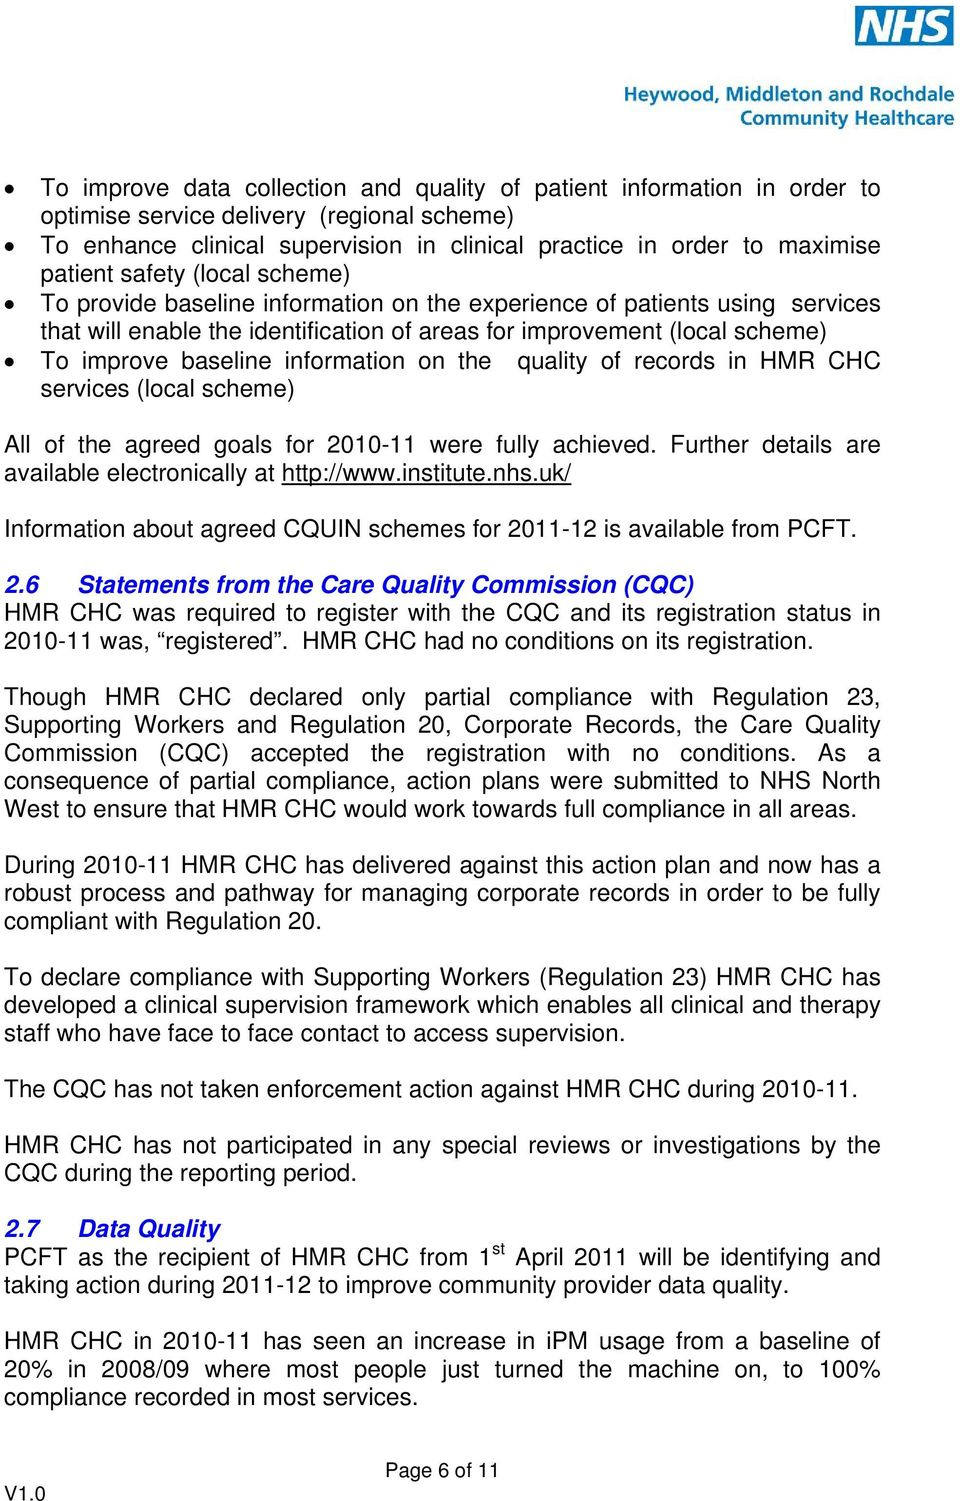 information on the quality of records in HMR CHC services (local scheme) All of the agreed goals for 2010-11 were fully achieved. Further details are available electronically at http://www.institute.